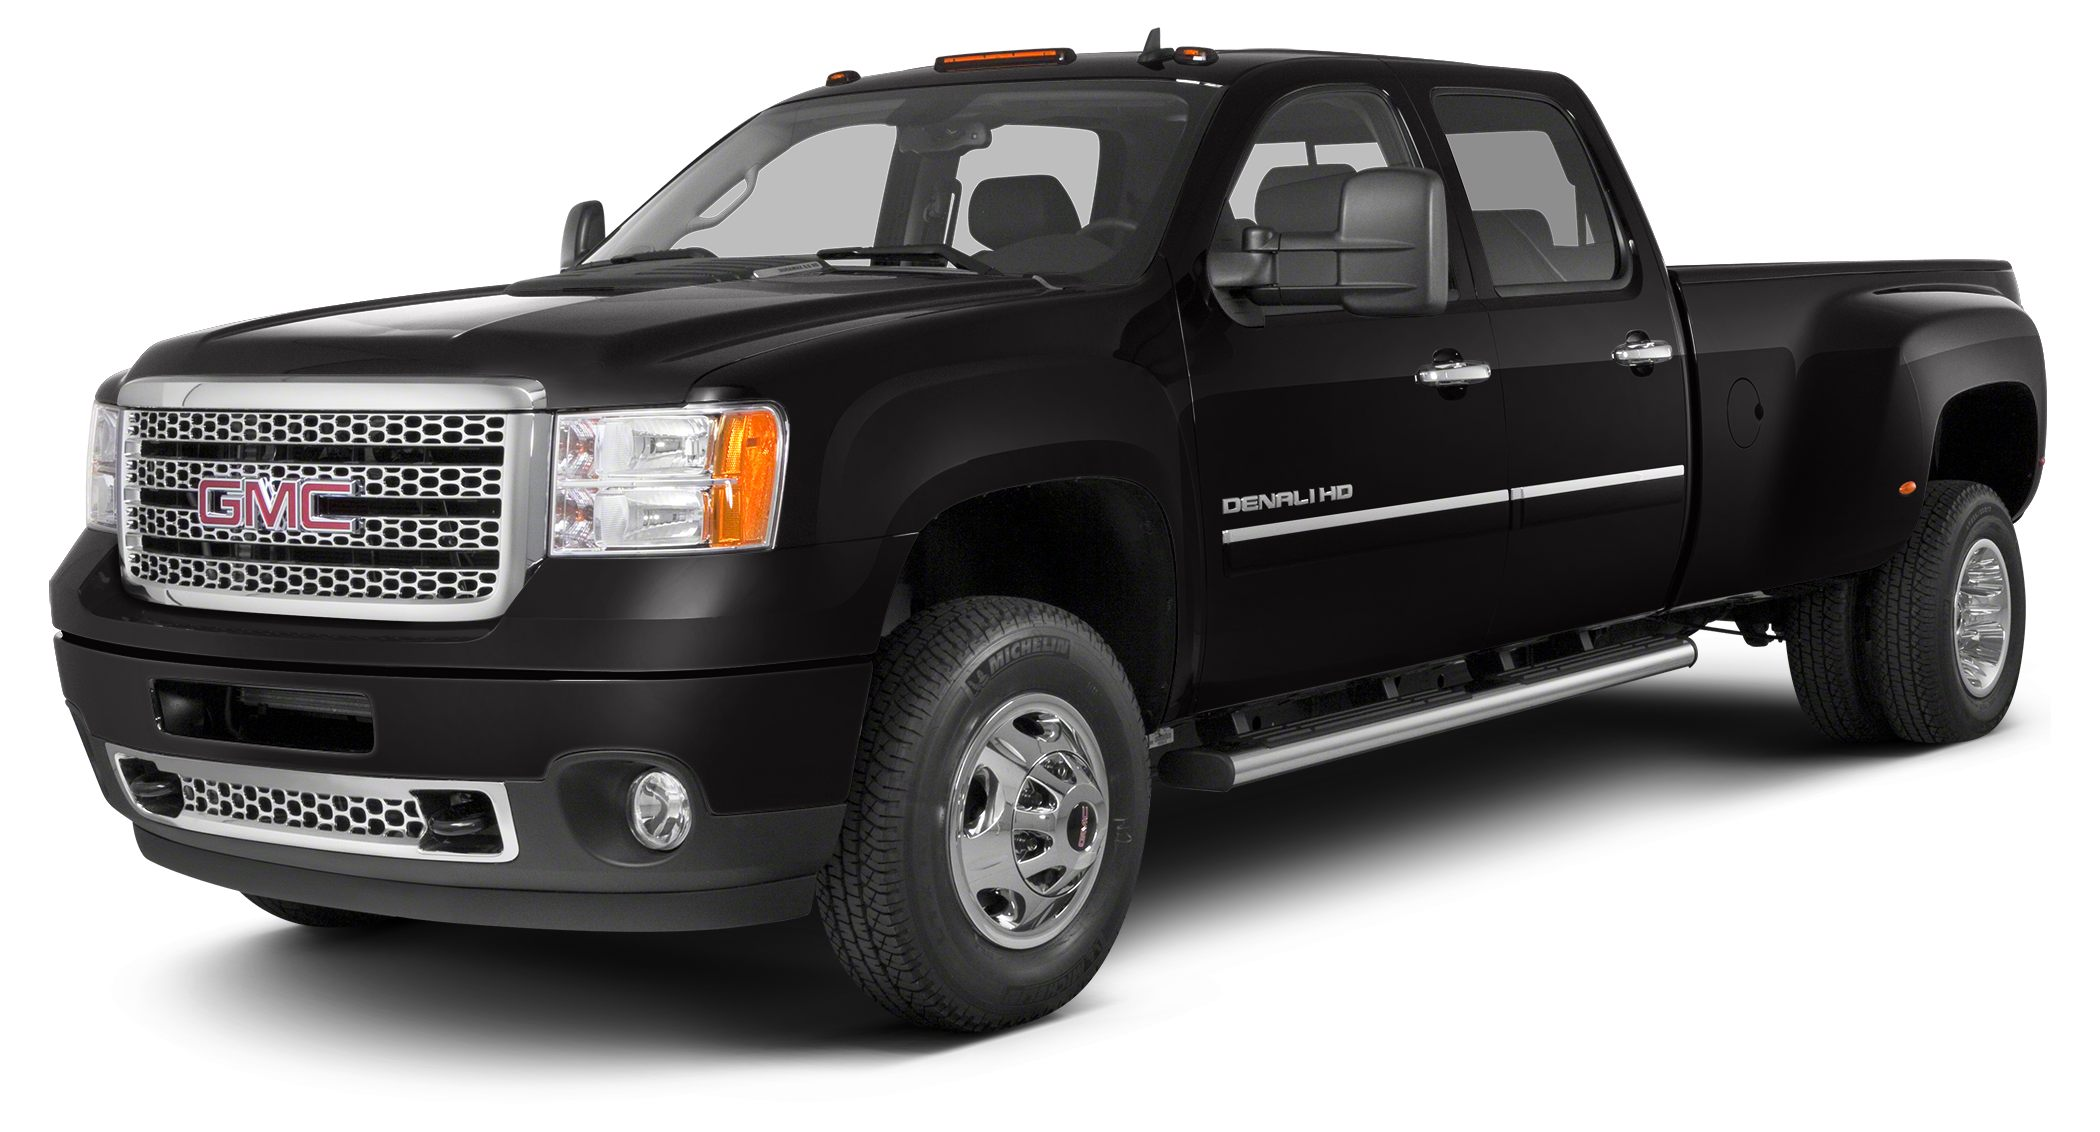 2013 GMC Sierra 3500HD Denali DRW Thank you for your interest in one of Lake Keowee Chrysler Dodge